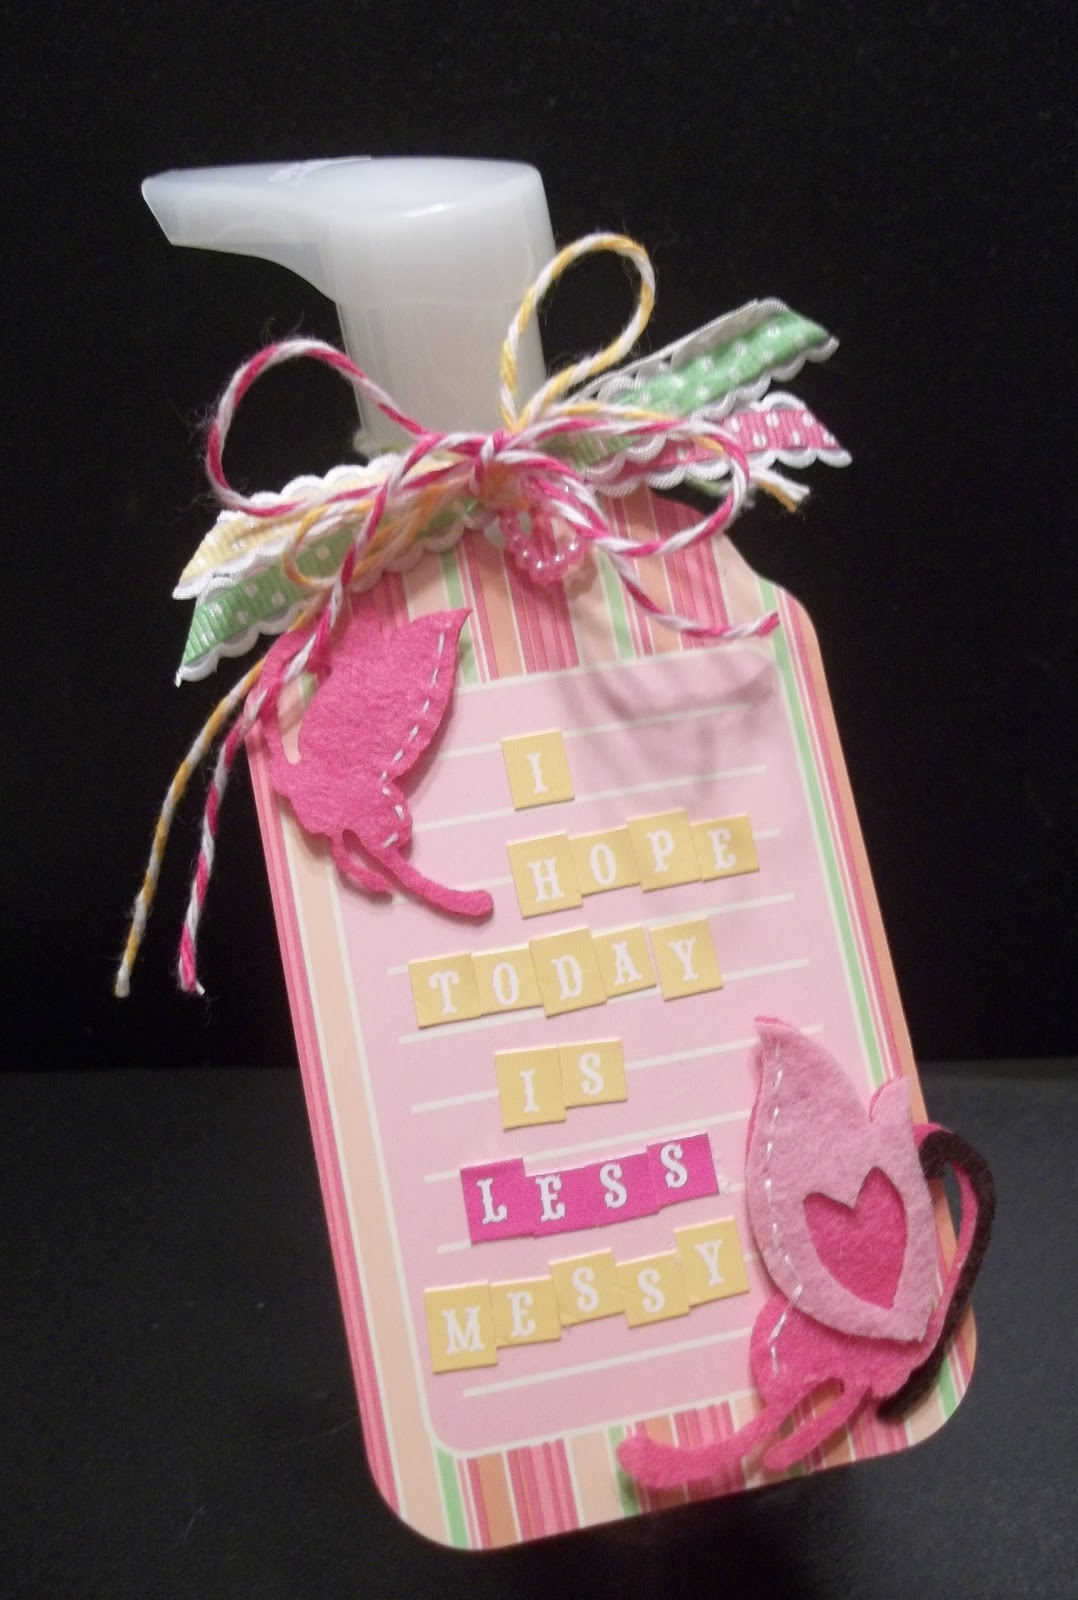 Creative Charms - embellish, enliven, enjoy: Brightening a Teachers Day